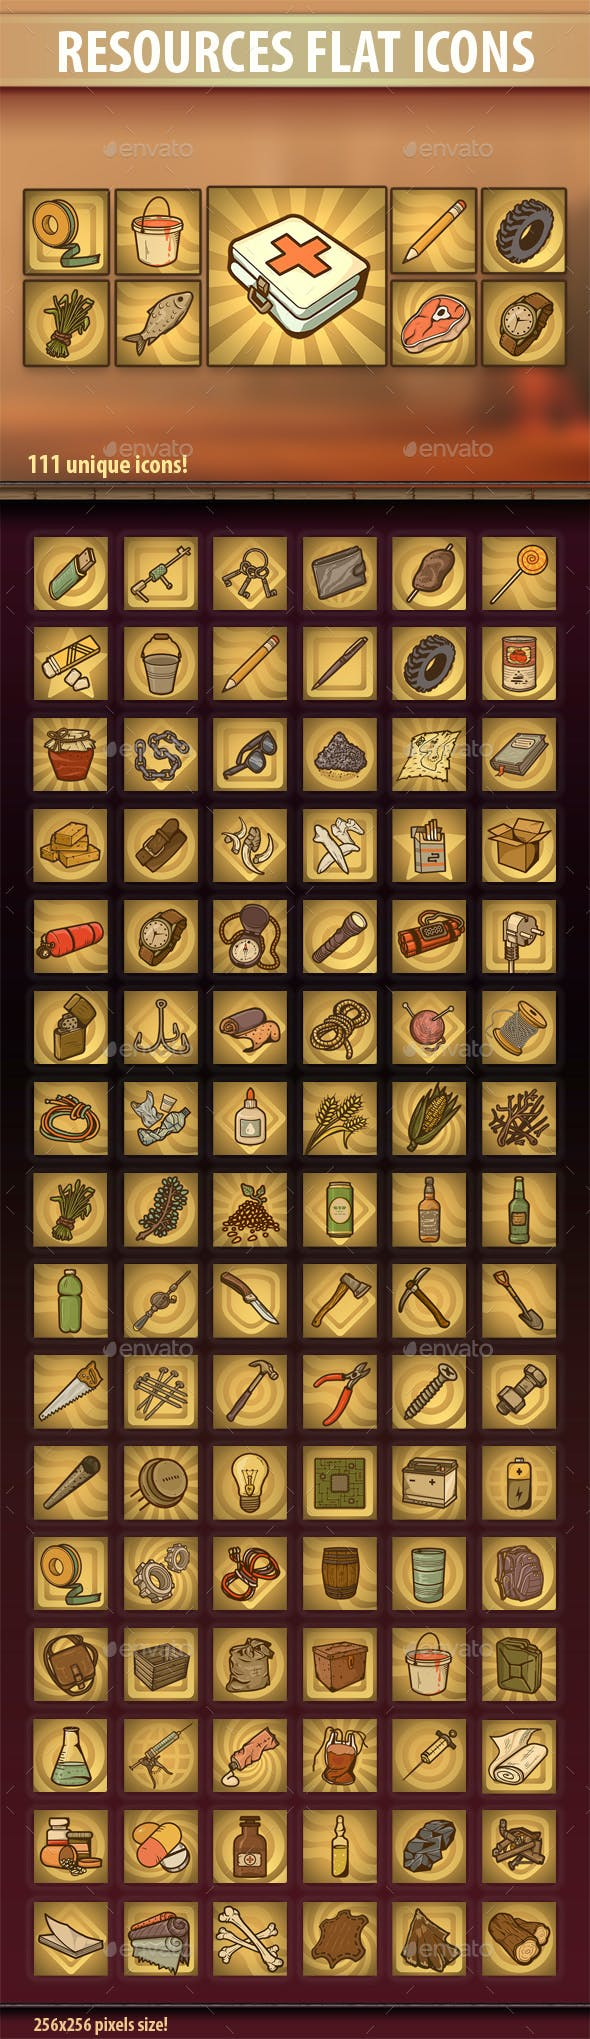 Resources Flat Icons